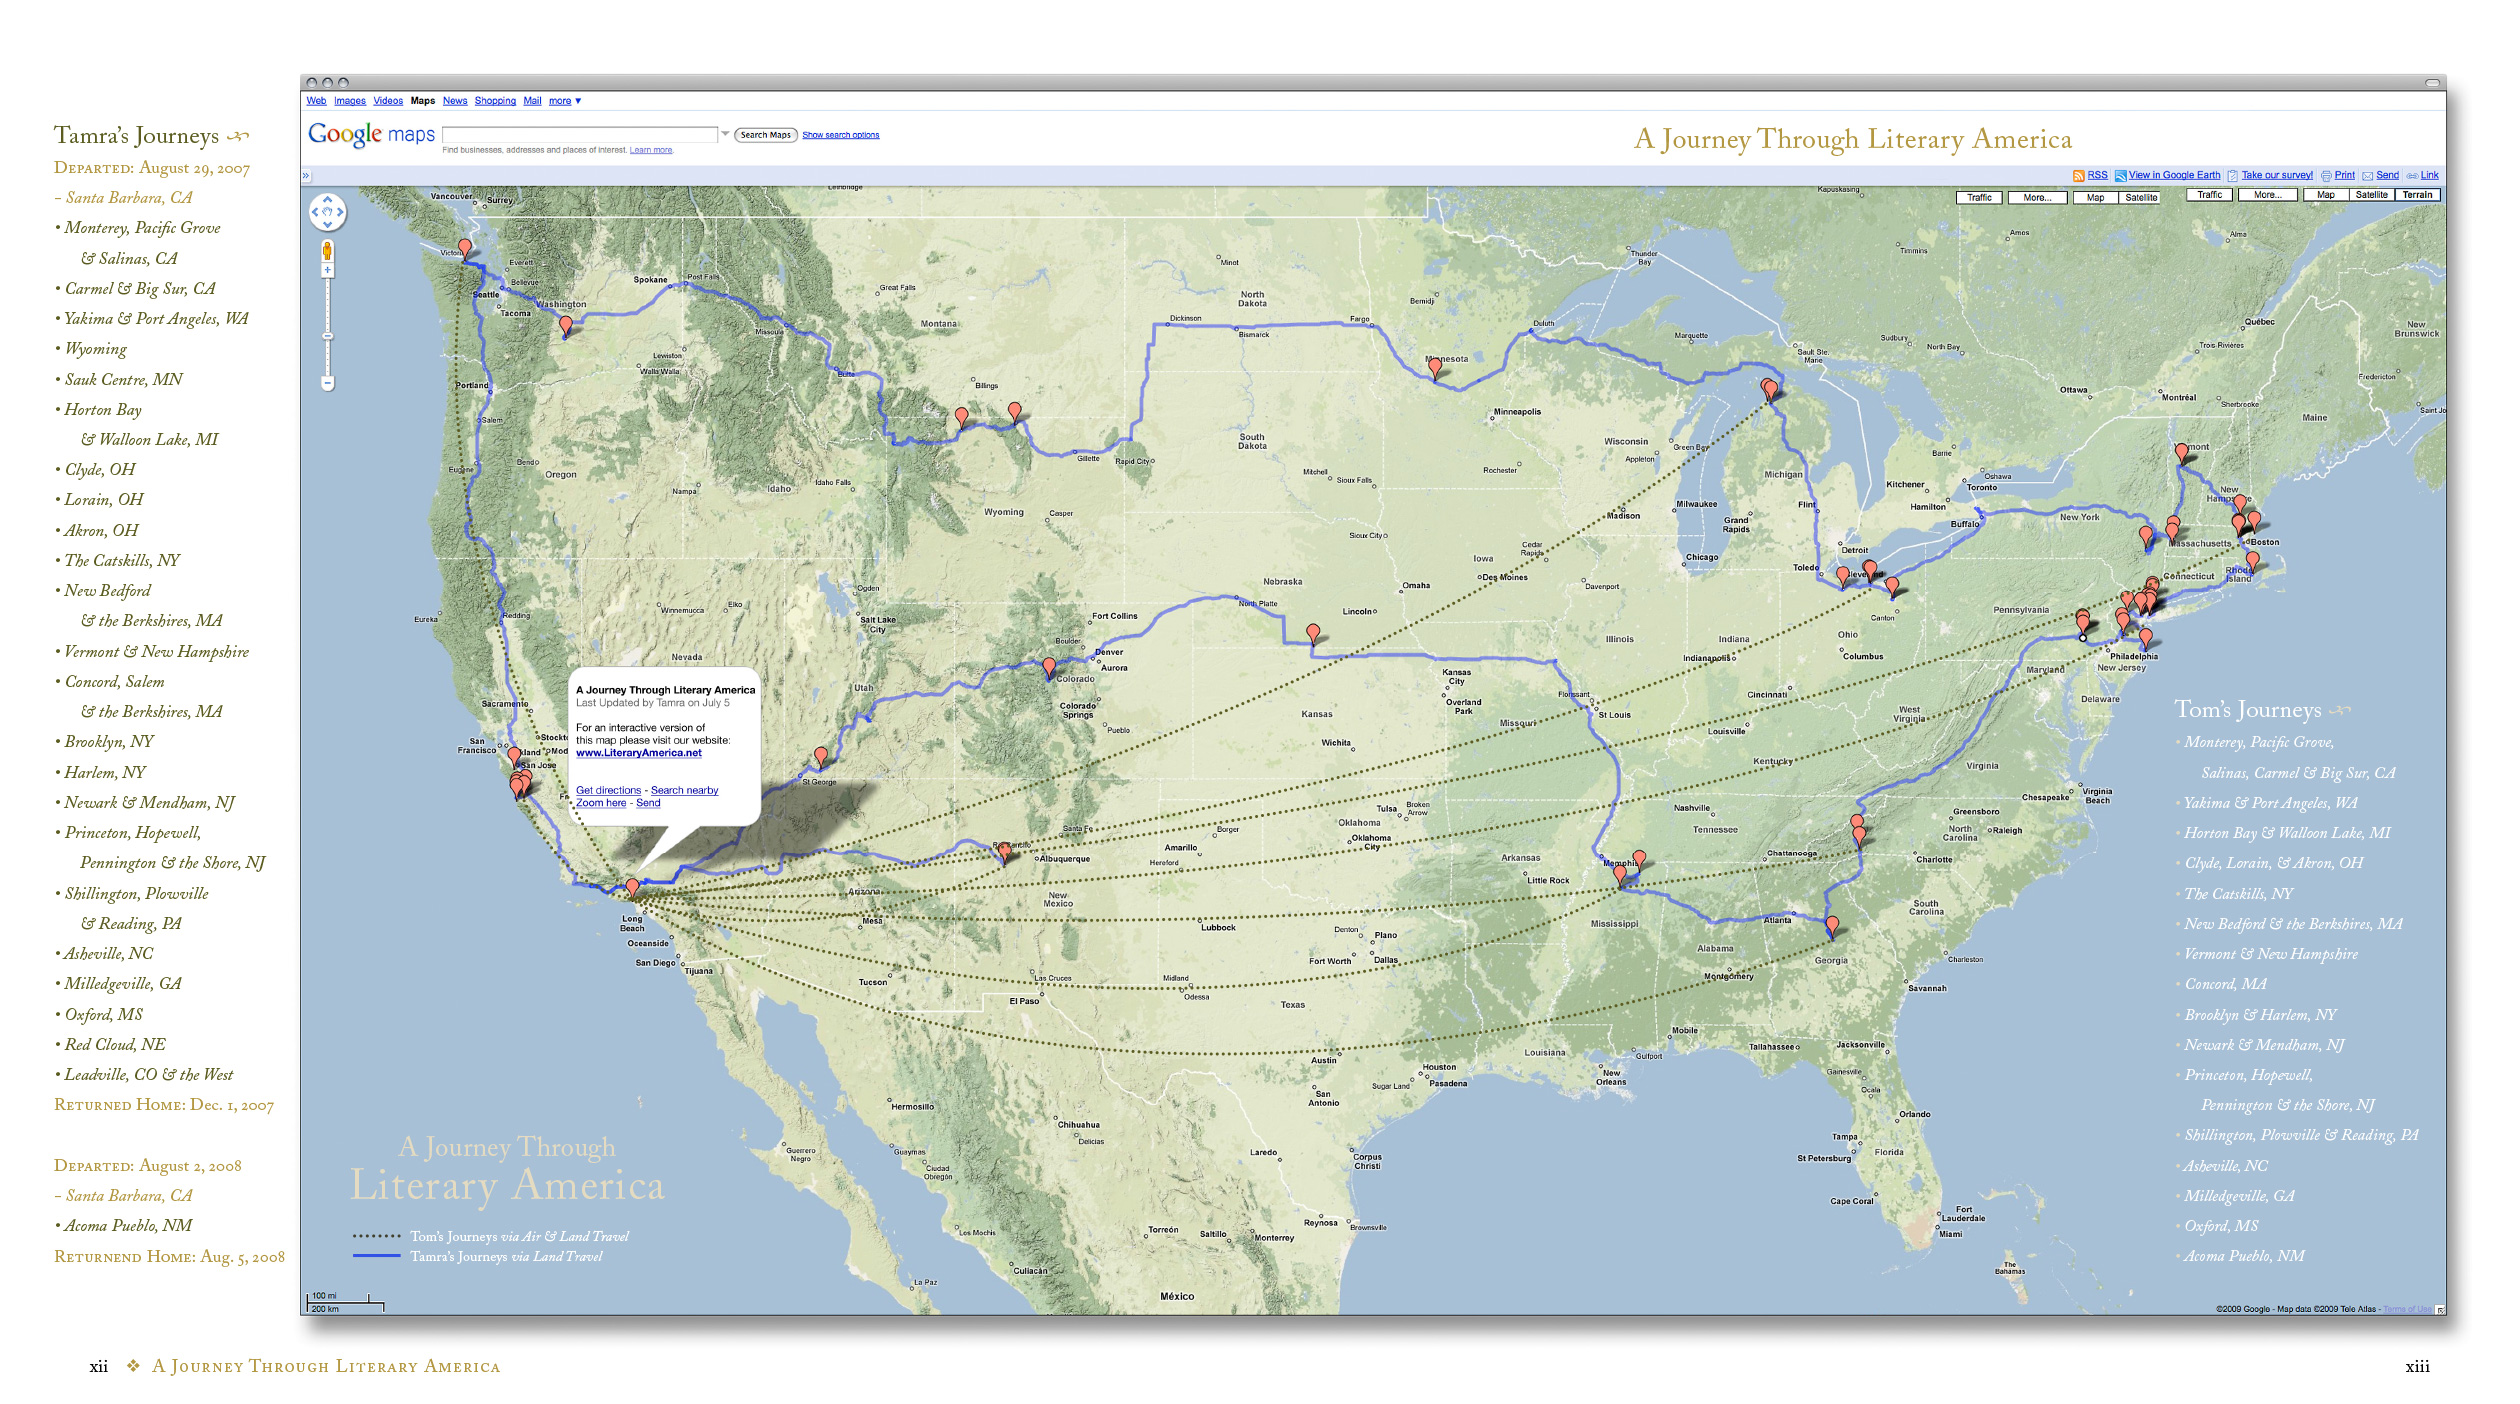 A Journey Through Literary America - Map